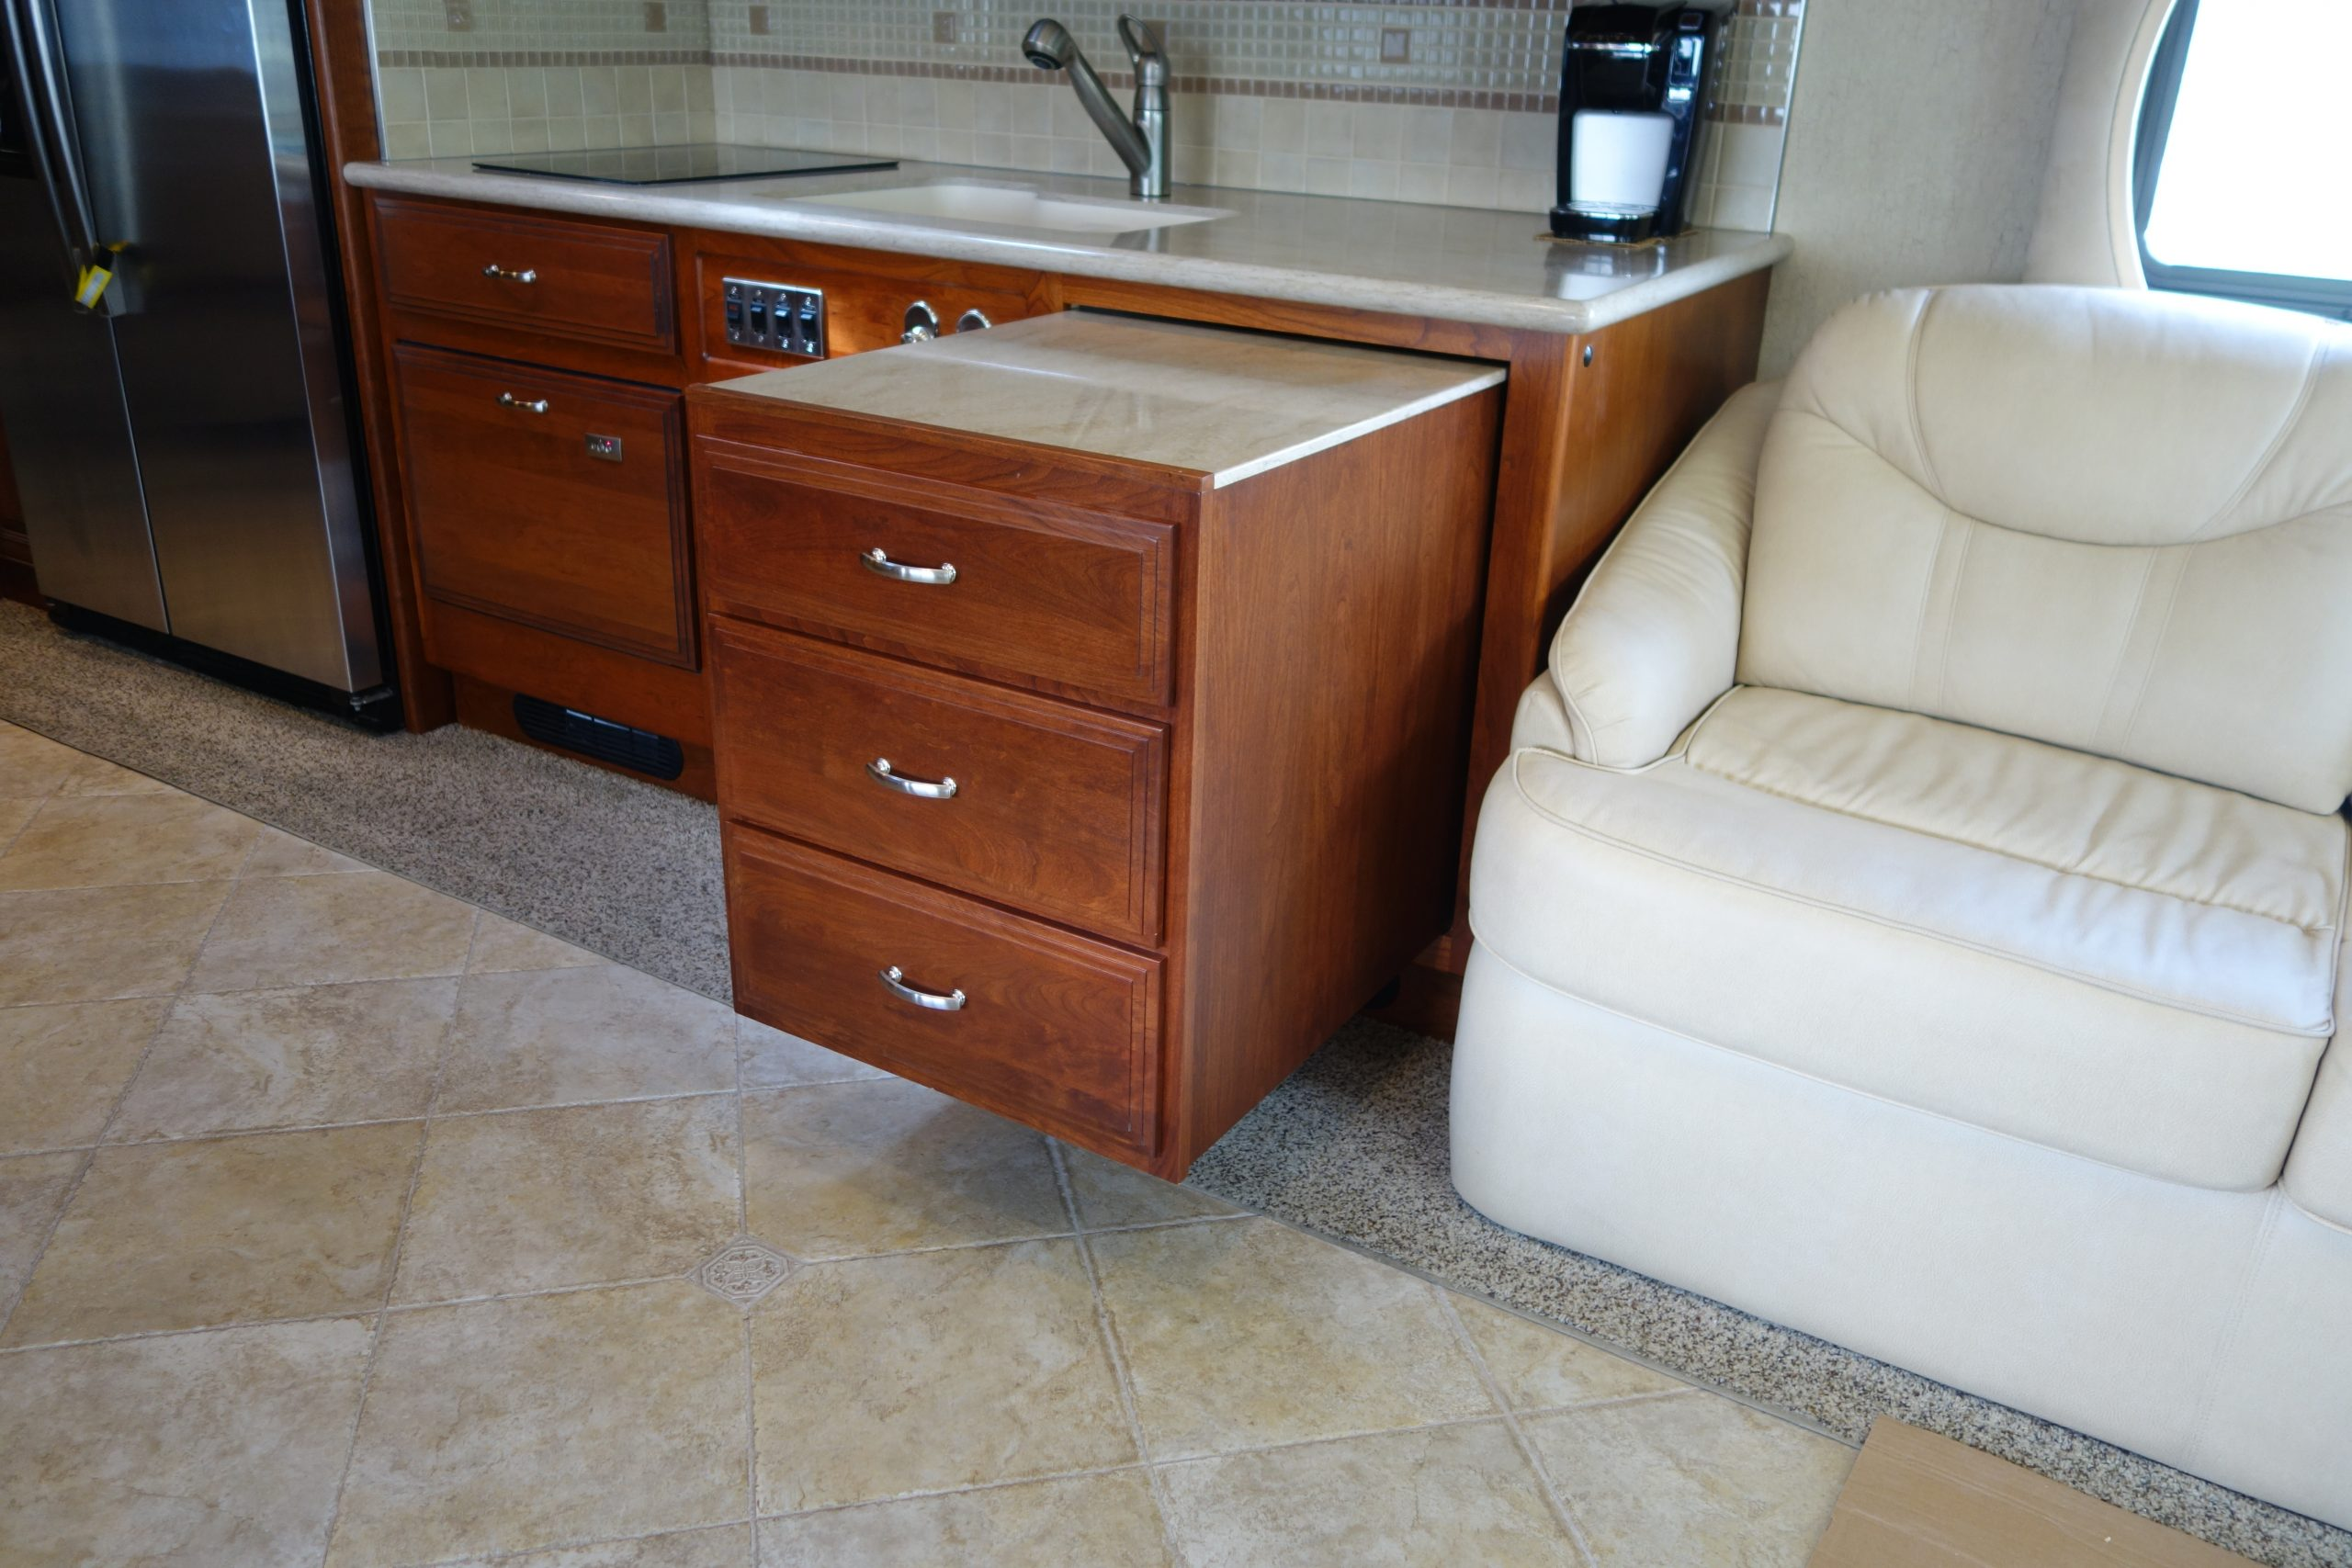 Pullout kitchen drawers